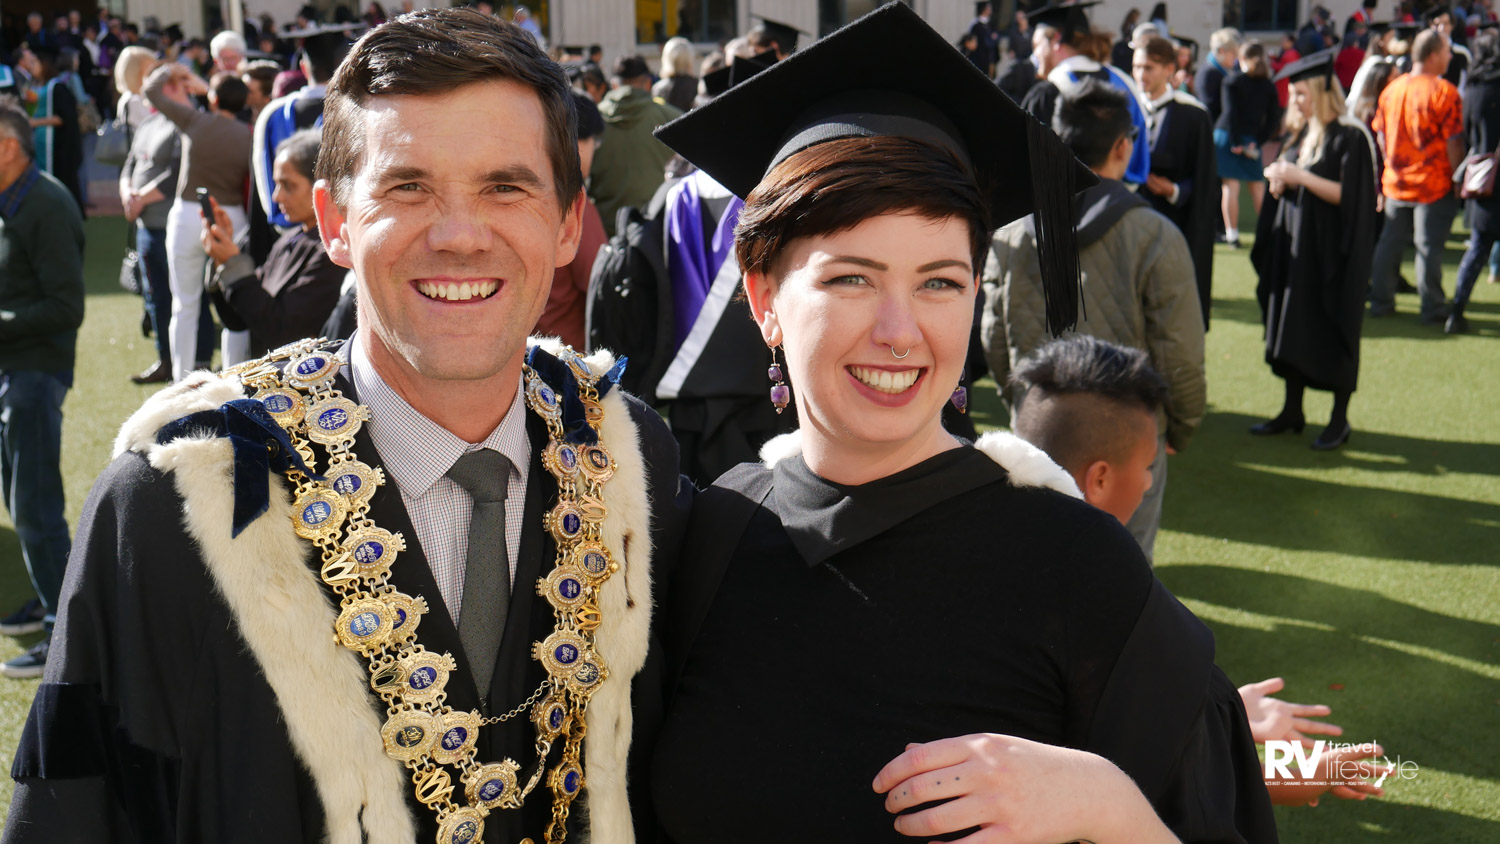 Wellington mayor Justin Lester and Shannon Goudie, a week of graduations in Wellingon. Justin was very accessible to all